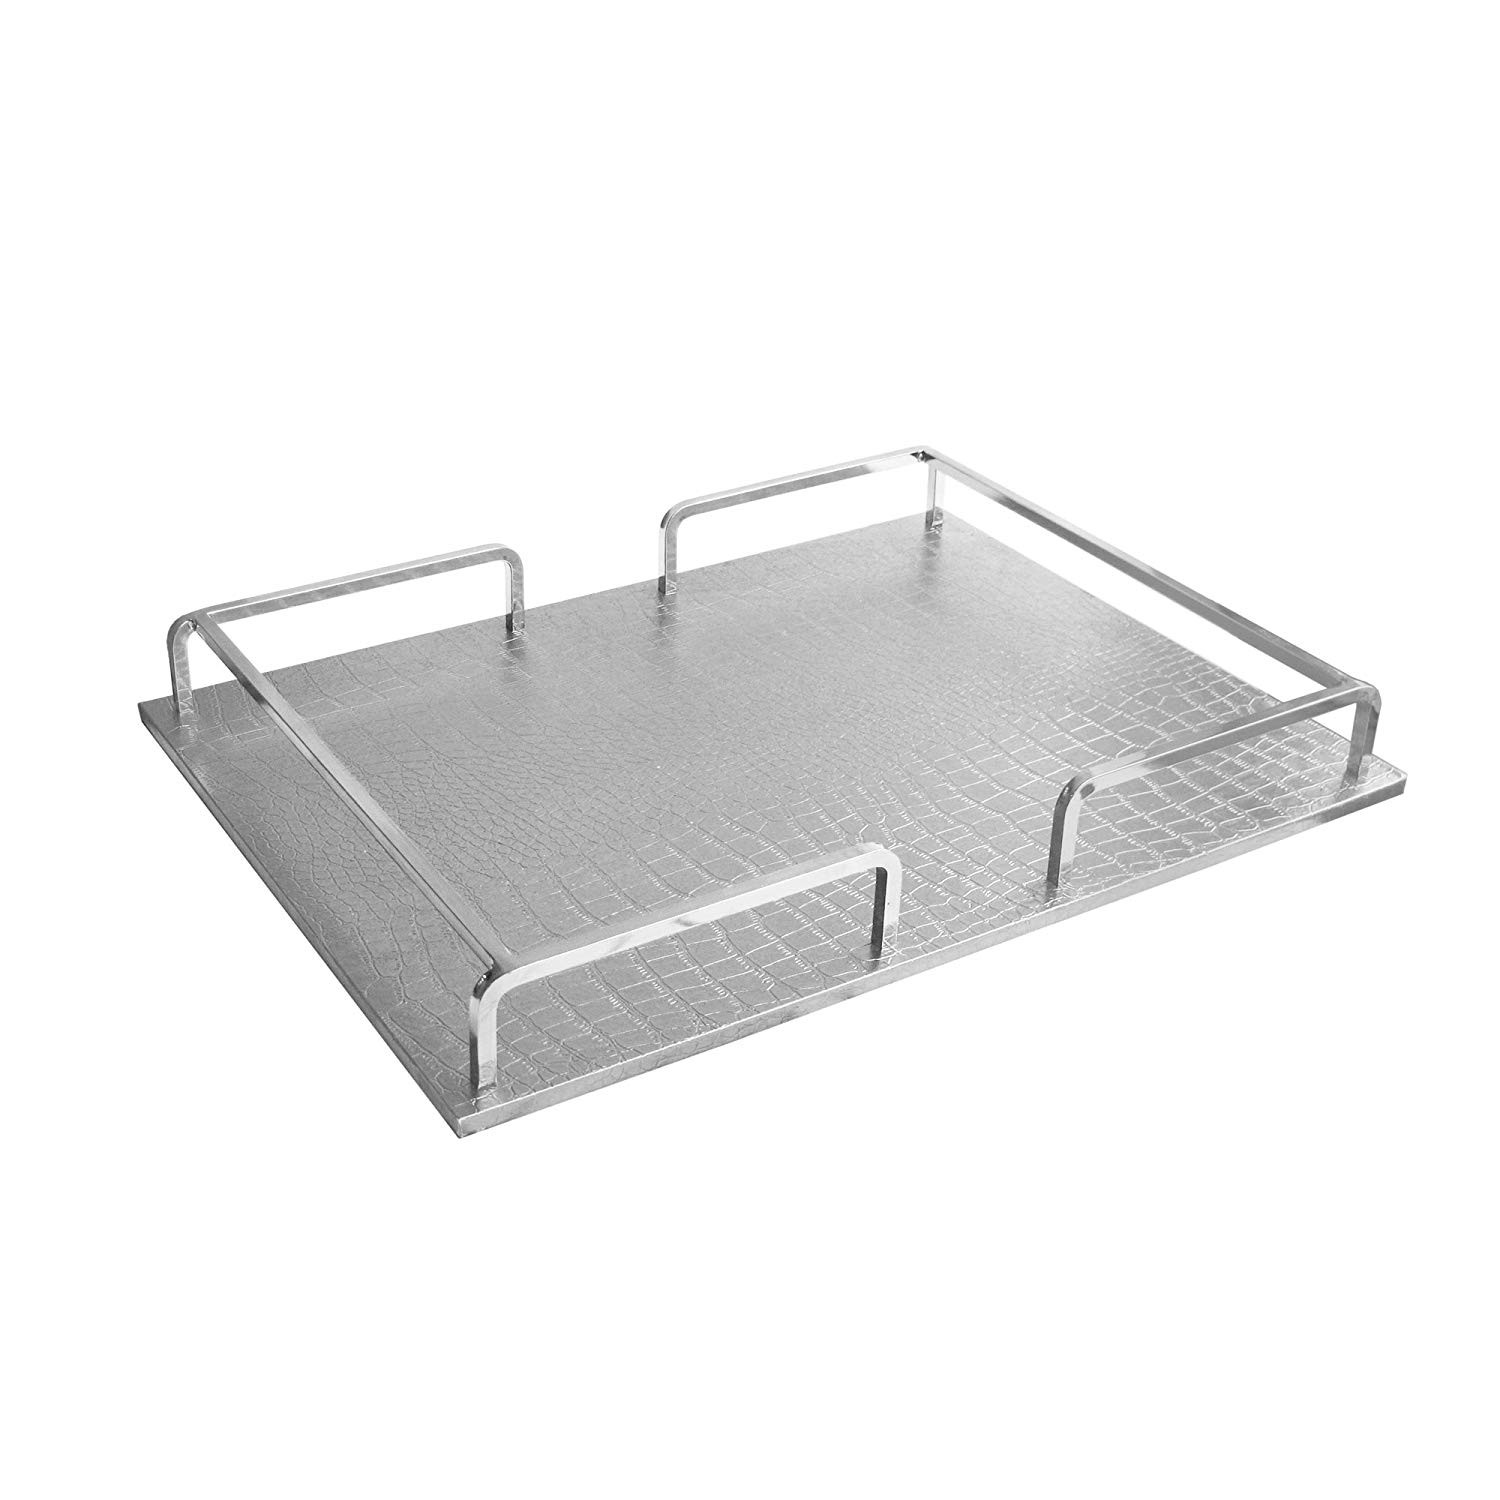 Phenomenal American Atelier 1330456 Croc Rail Tray Silver Silver Alphanode Cool Chair Designs And Ideas Alphanodeonline